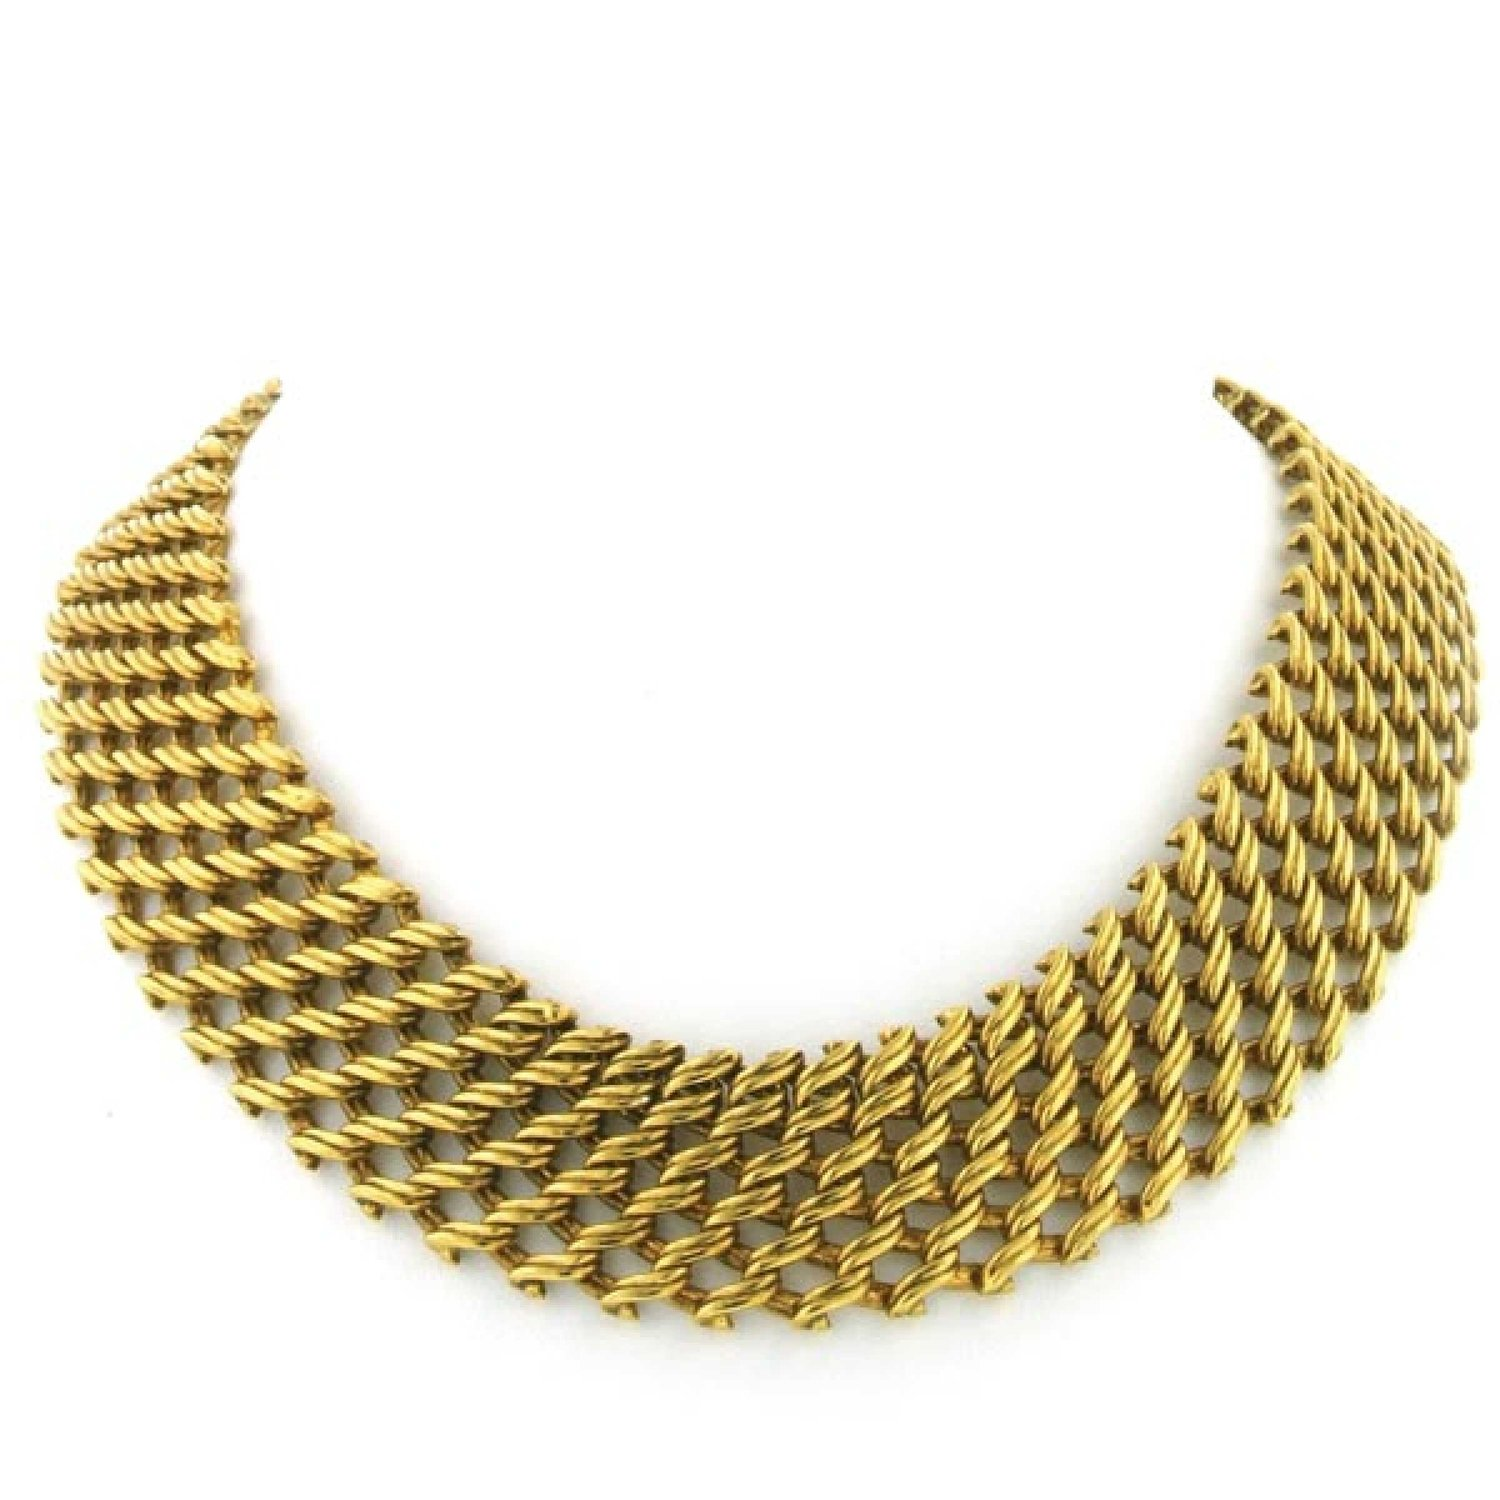 Amazon.com: Antique 17 Gold Collar Choker Gold Plated: Choker Necklaces: Jewelry